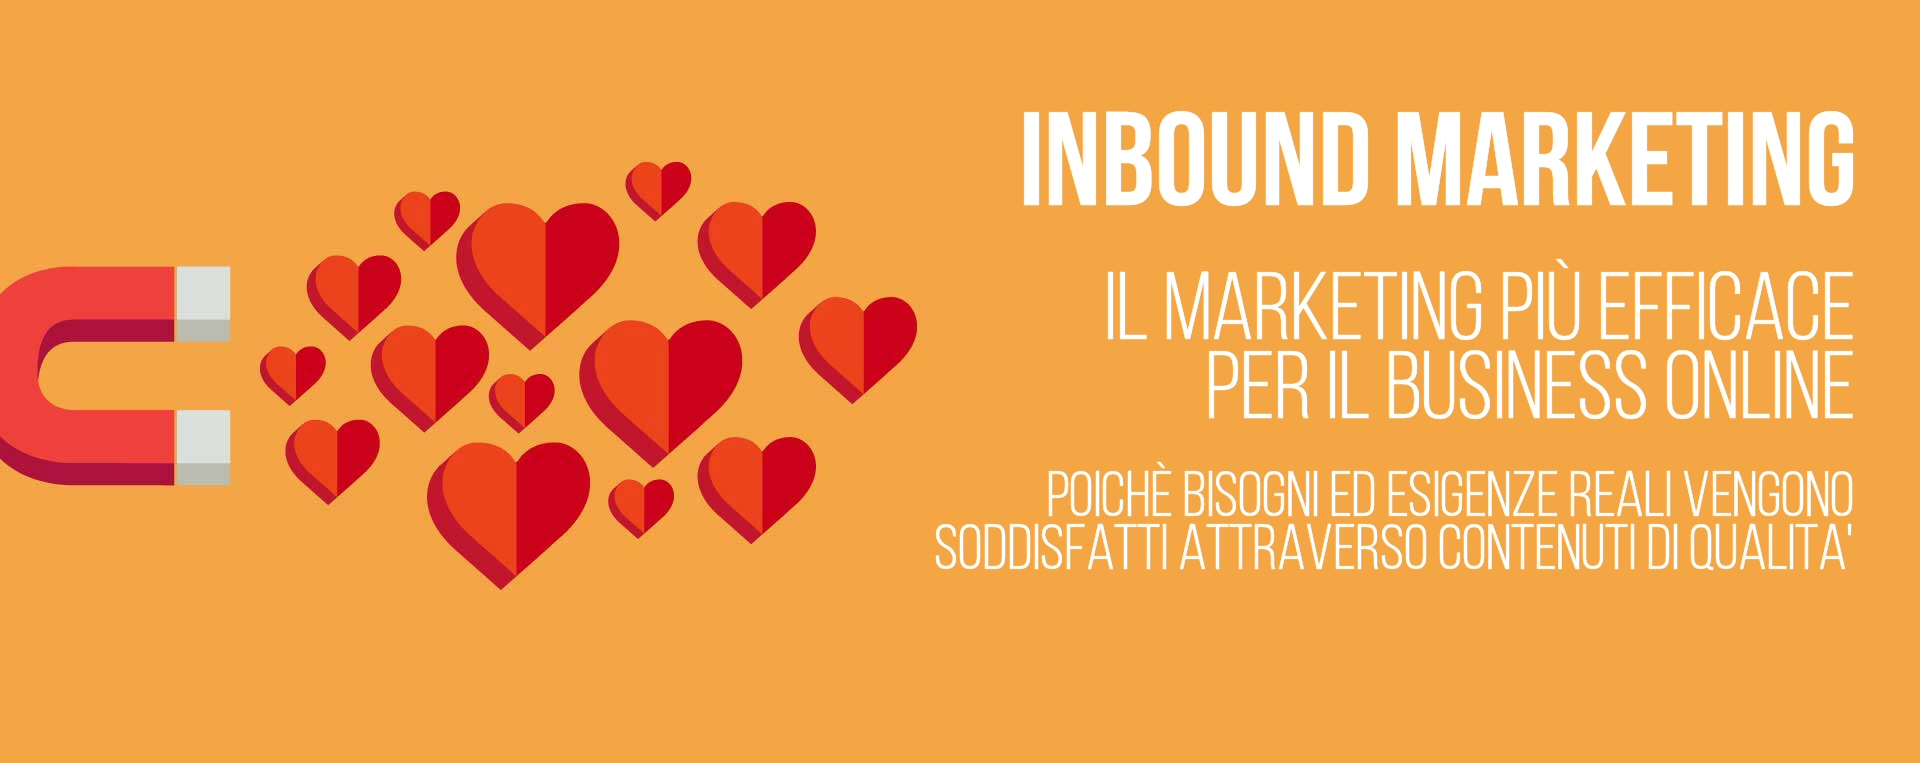 Agenzia Inbound Marketing Hubspot